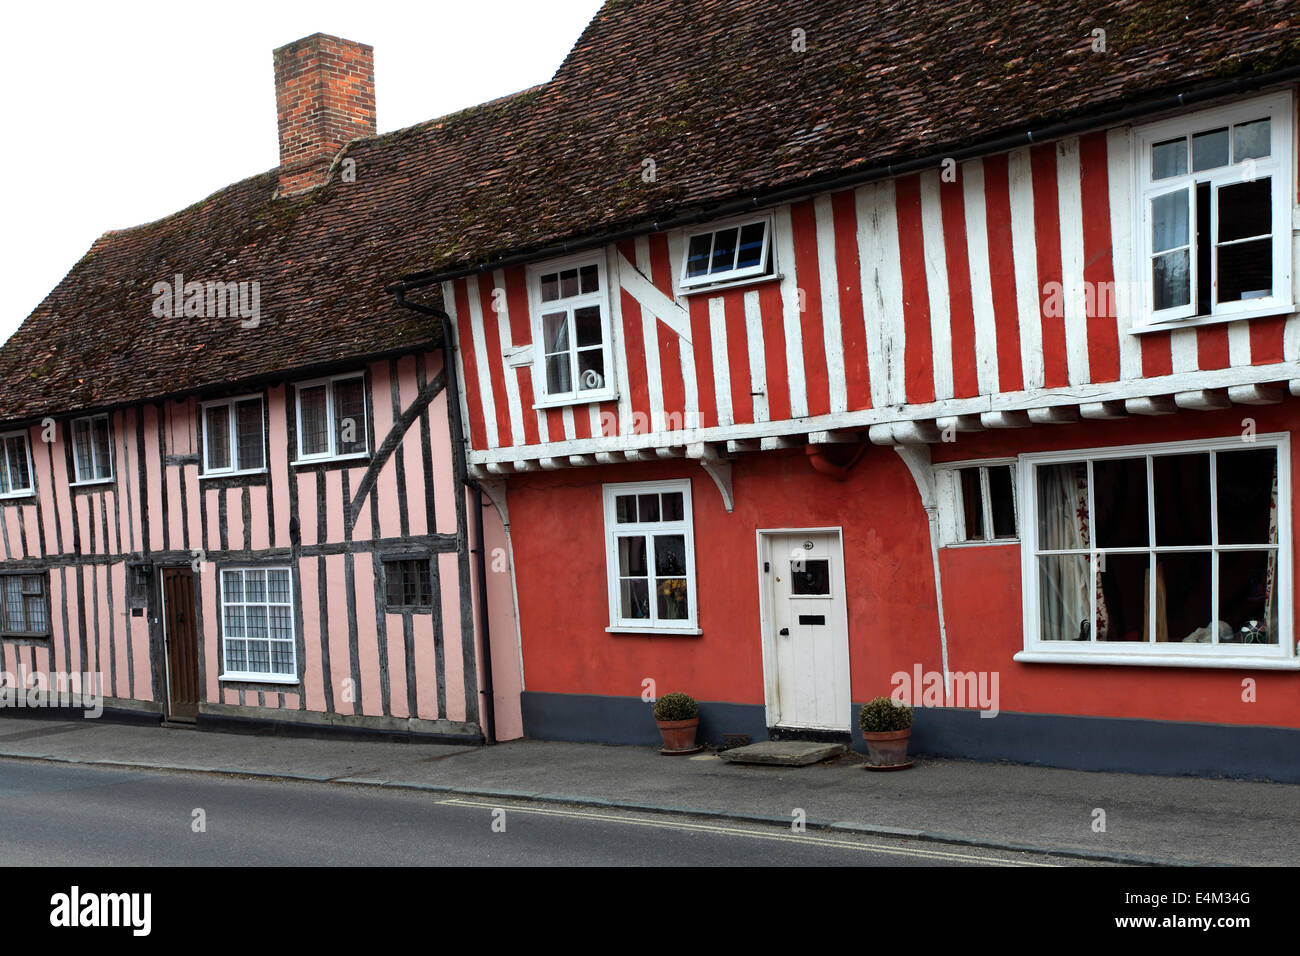 Colorful Half Timber Built Thatched Cottages, Lavenham village, Suffolk County, England, Britain. - Stock Image